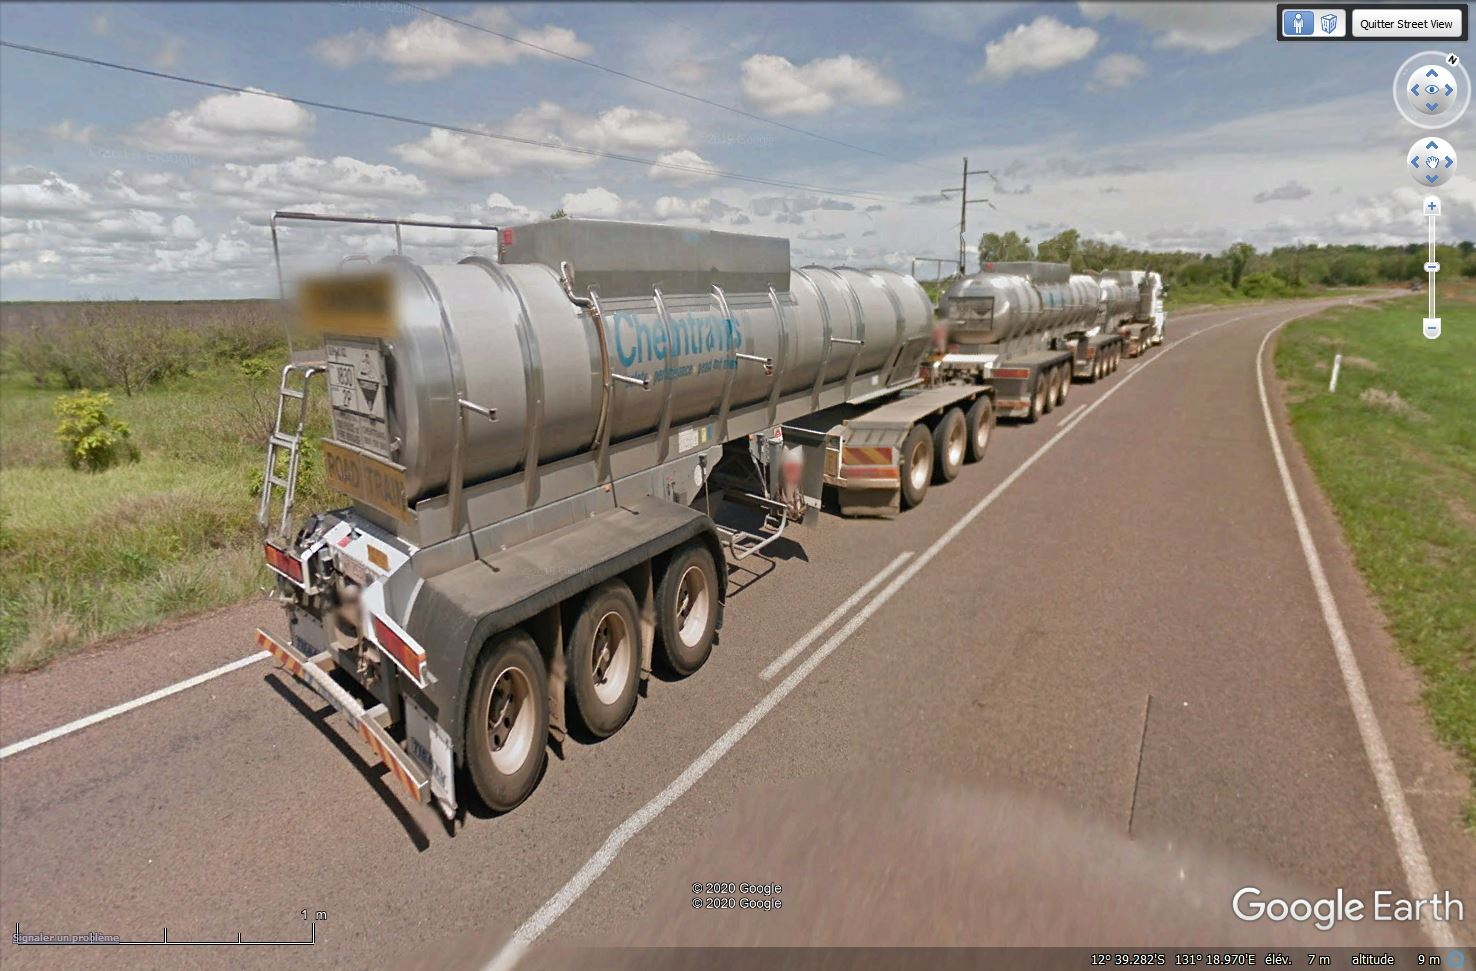 Camions australiens (road trains) - Page 6 Tsge1364